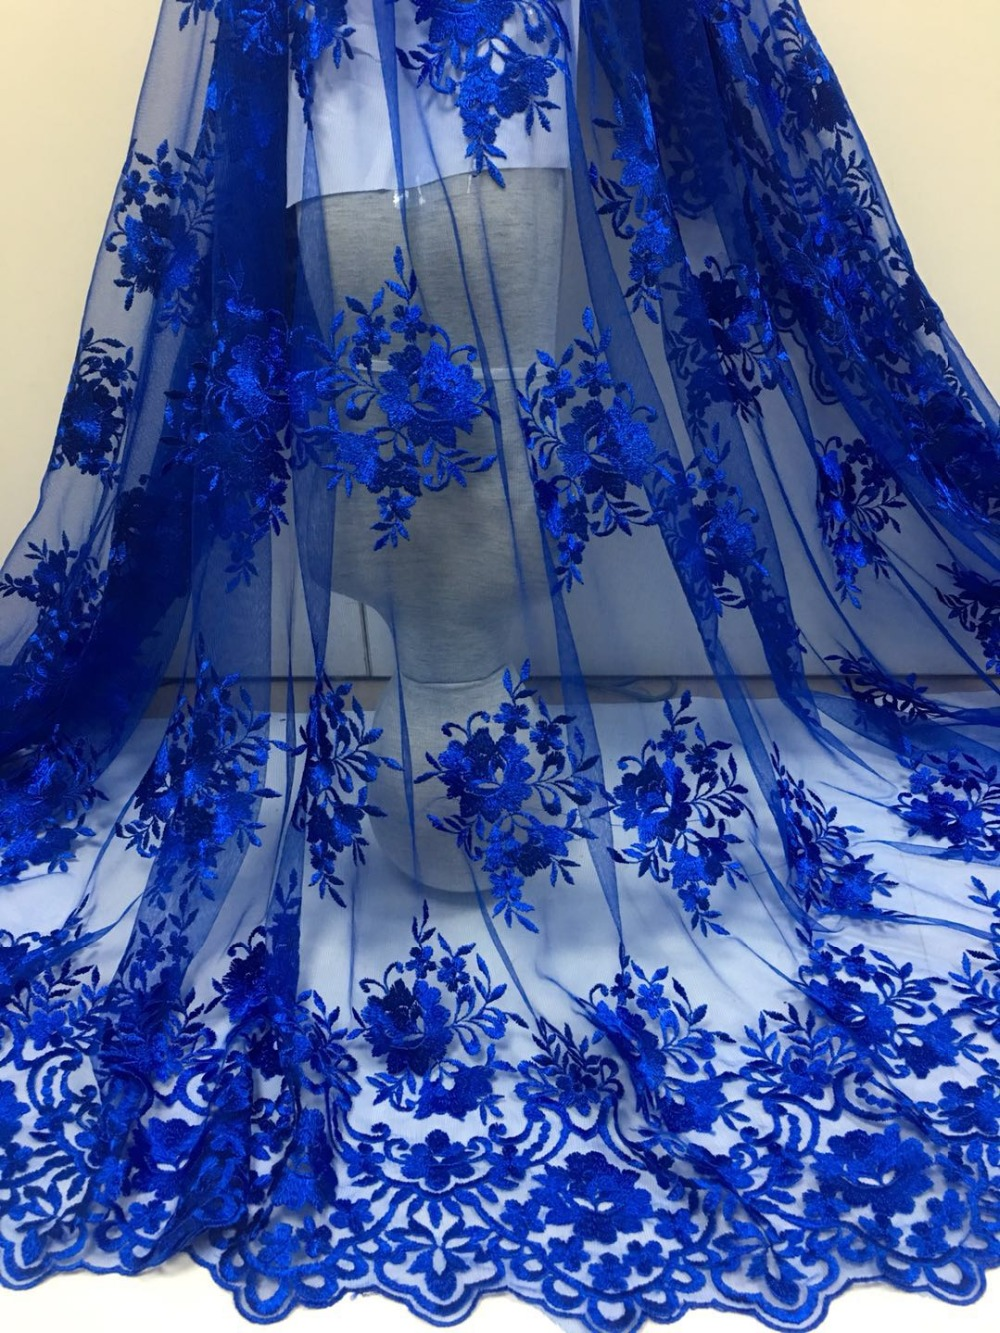 5 yards Royal blue french net lace lace fabric for wedding high quality African lace fabric